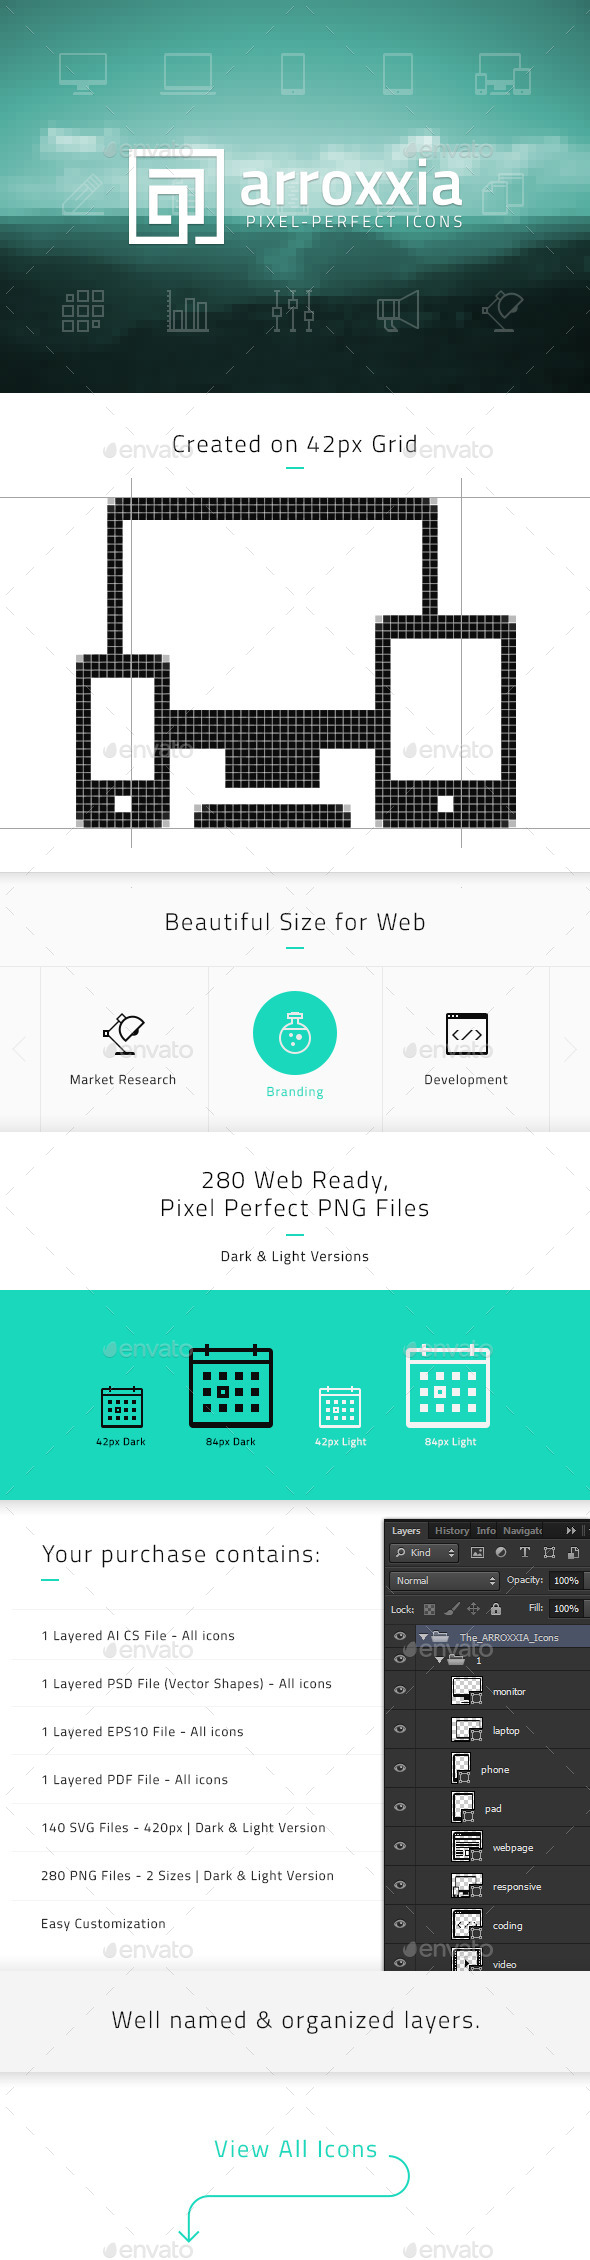 GraphicRiver Arroxxia Pixel Perfect Icons 10929233